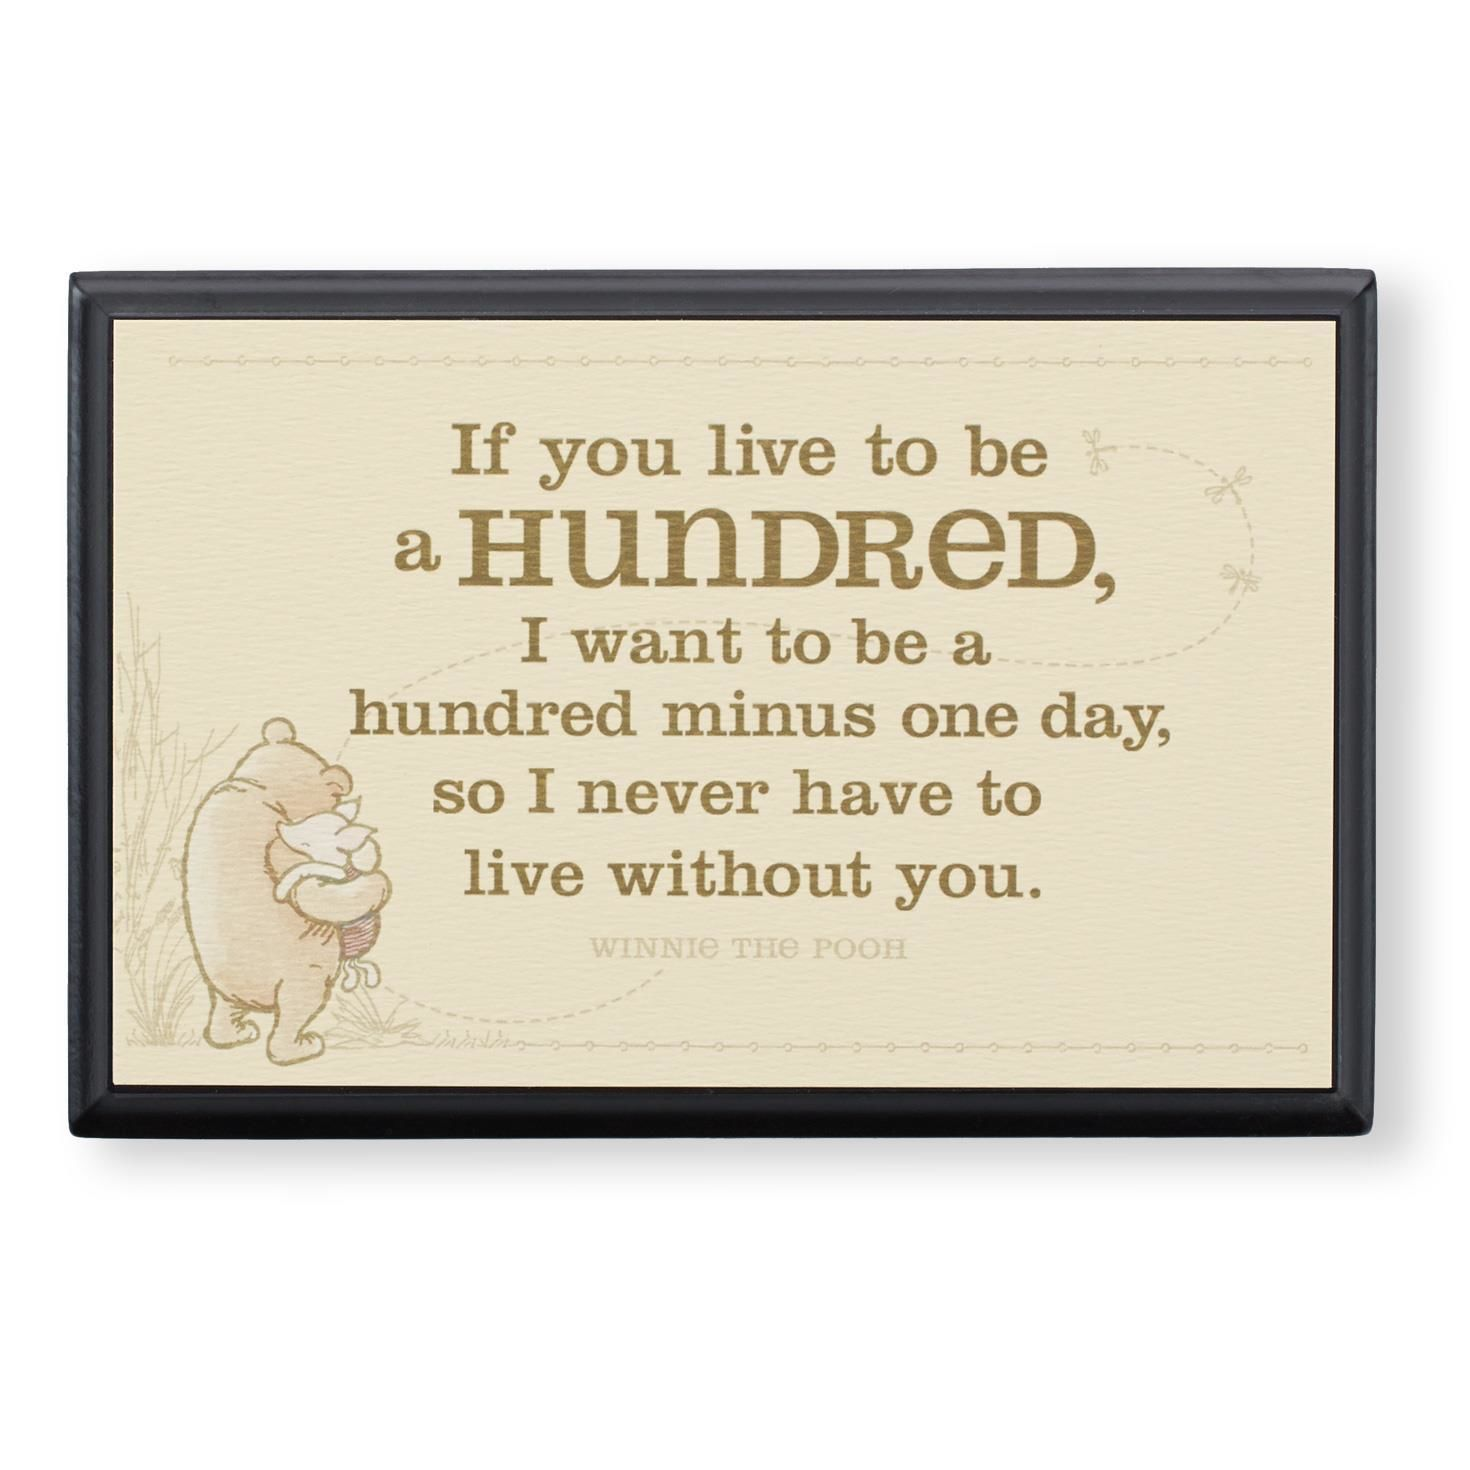 Winnie The Pooh Quote About Friendship Beautiful Winnie The Pooh And Piglet Quote From Hallmark For The